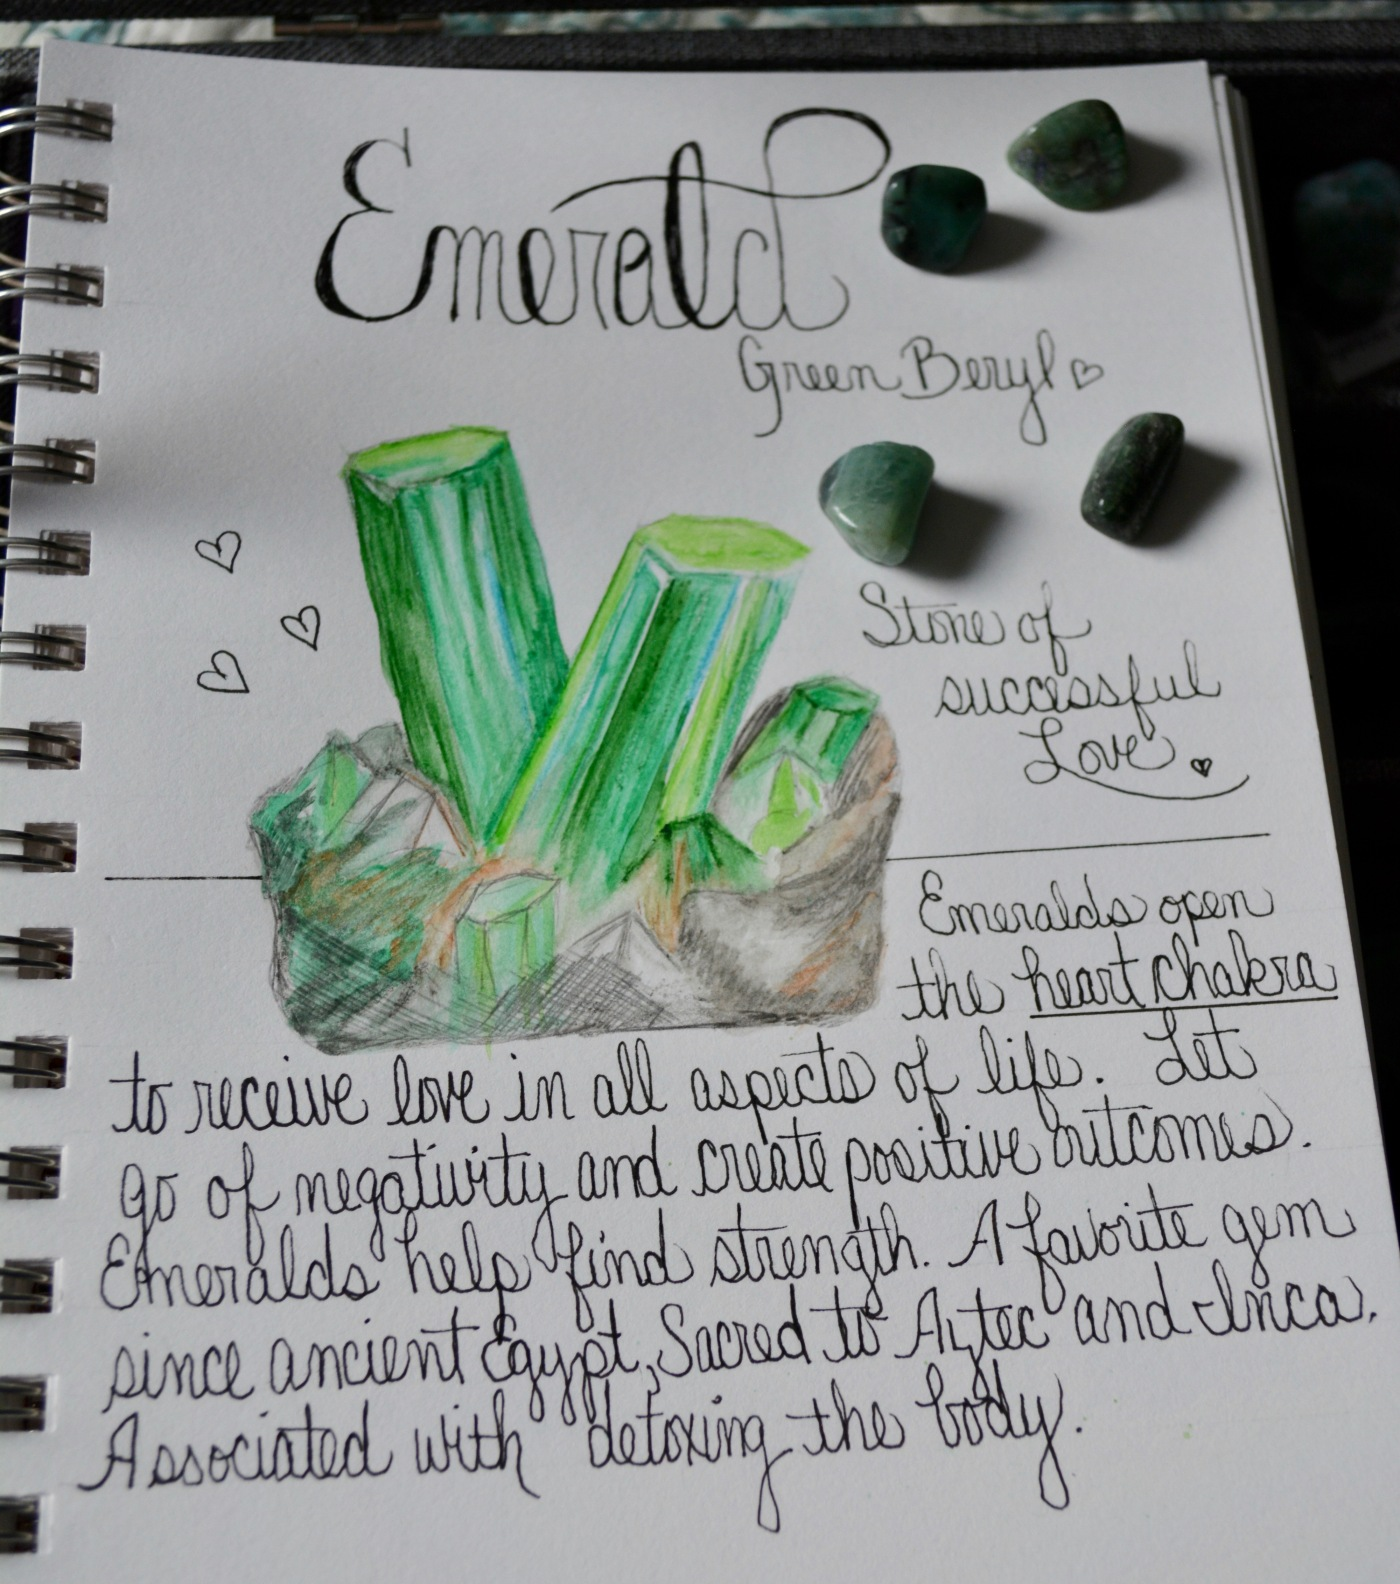 Stone of successful love, May's crystal of the month is emerald.